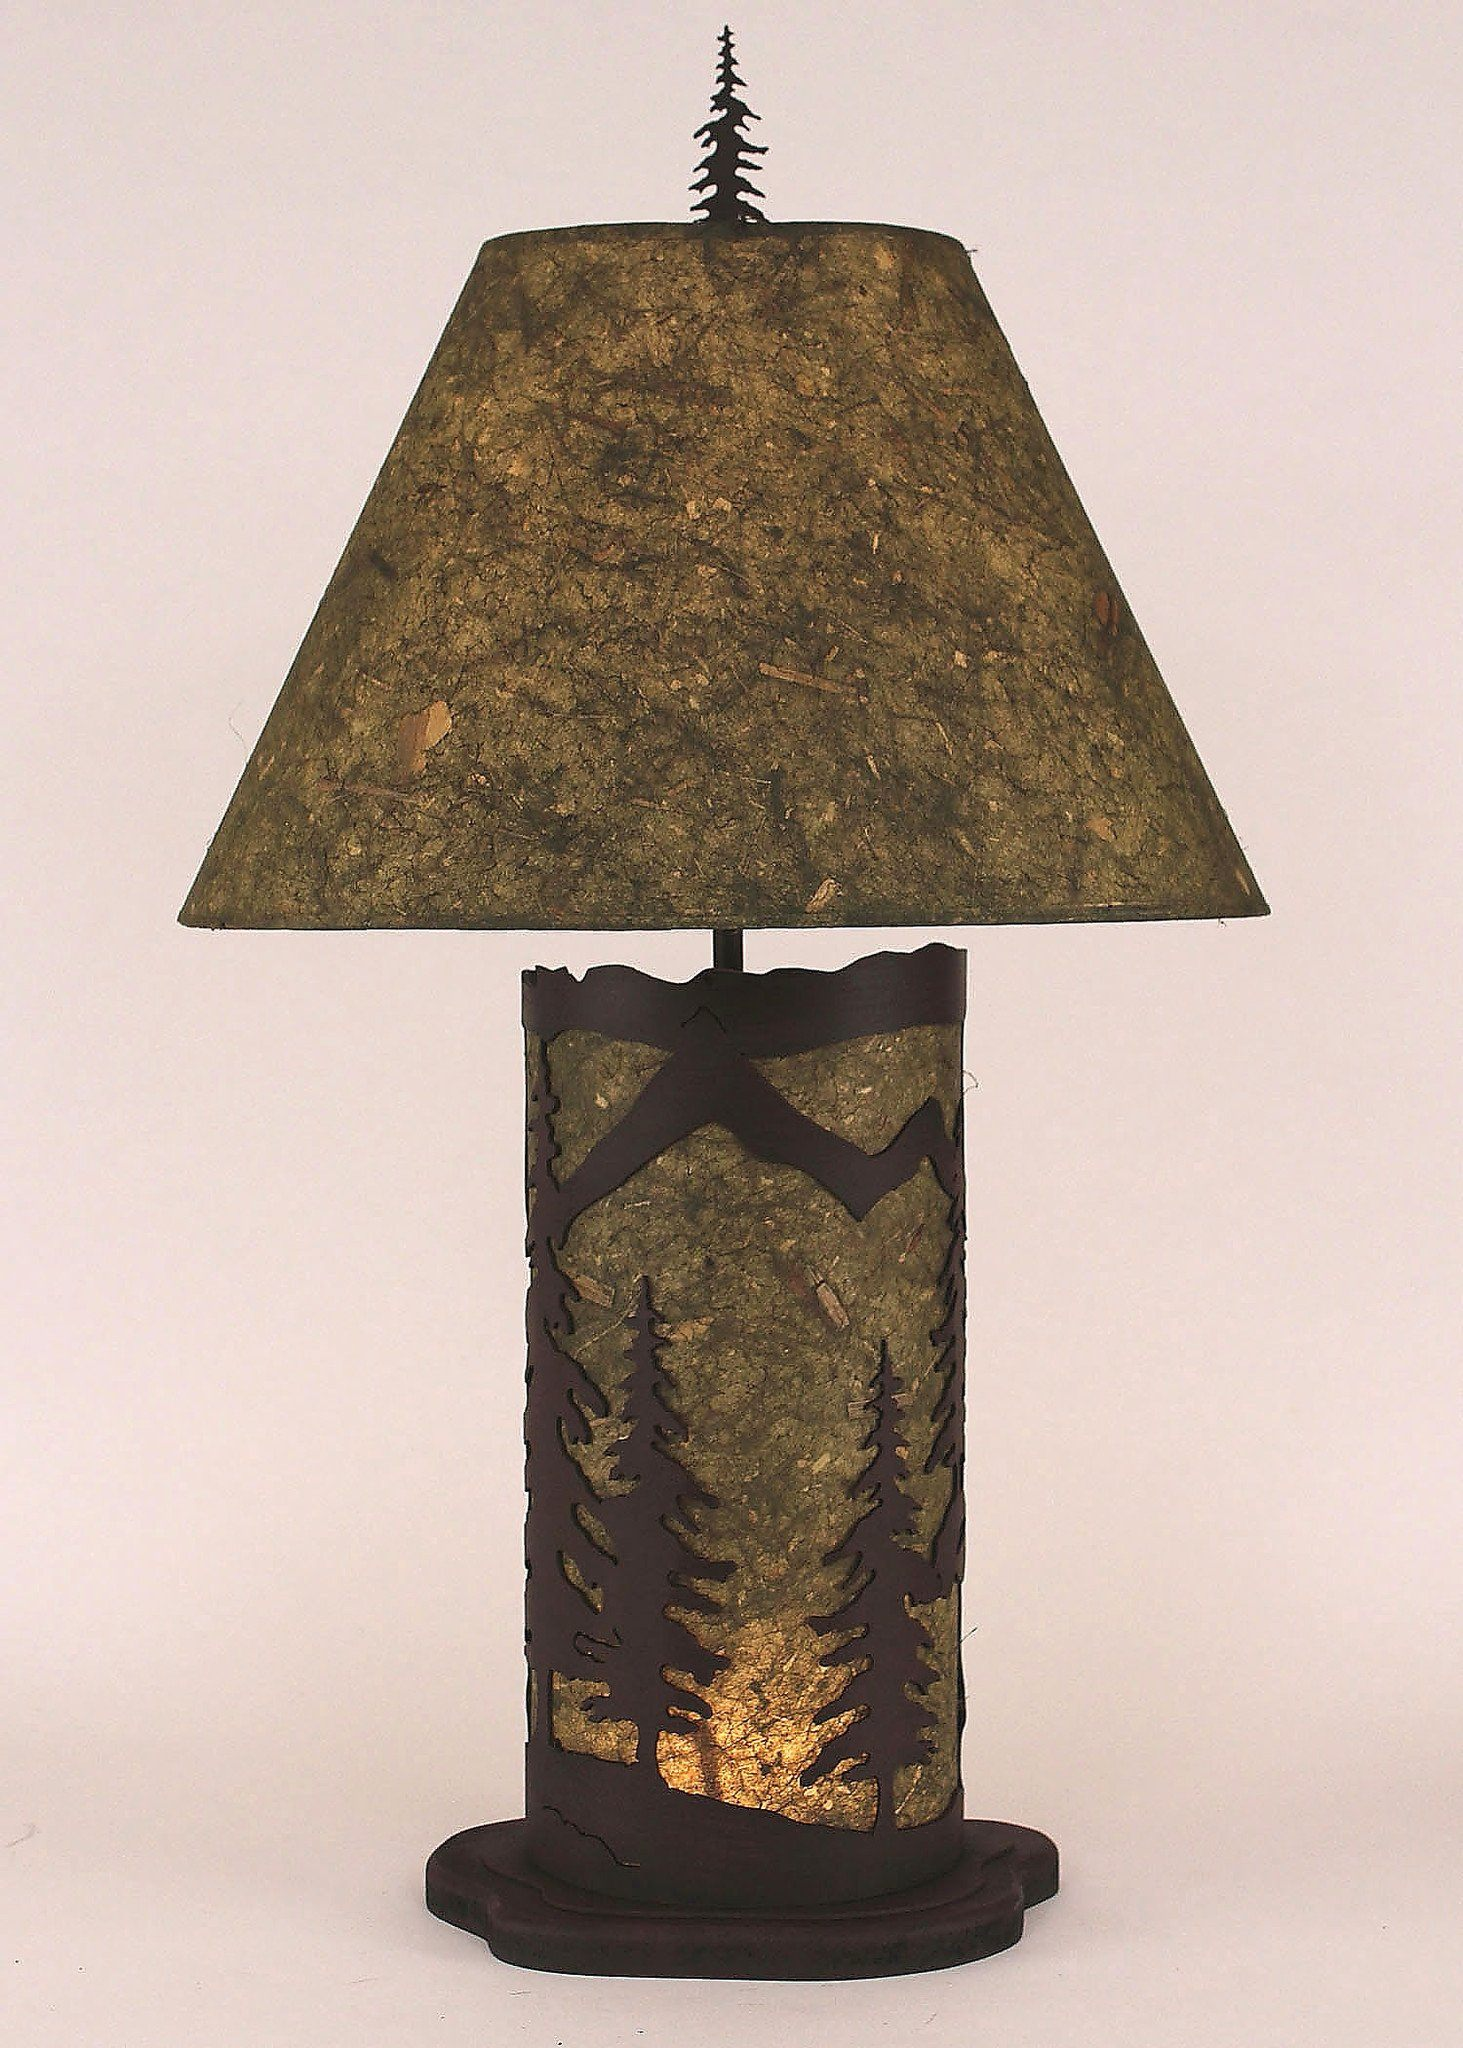 Small Mountain Scene Table Lamp with Embossed Panel